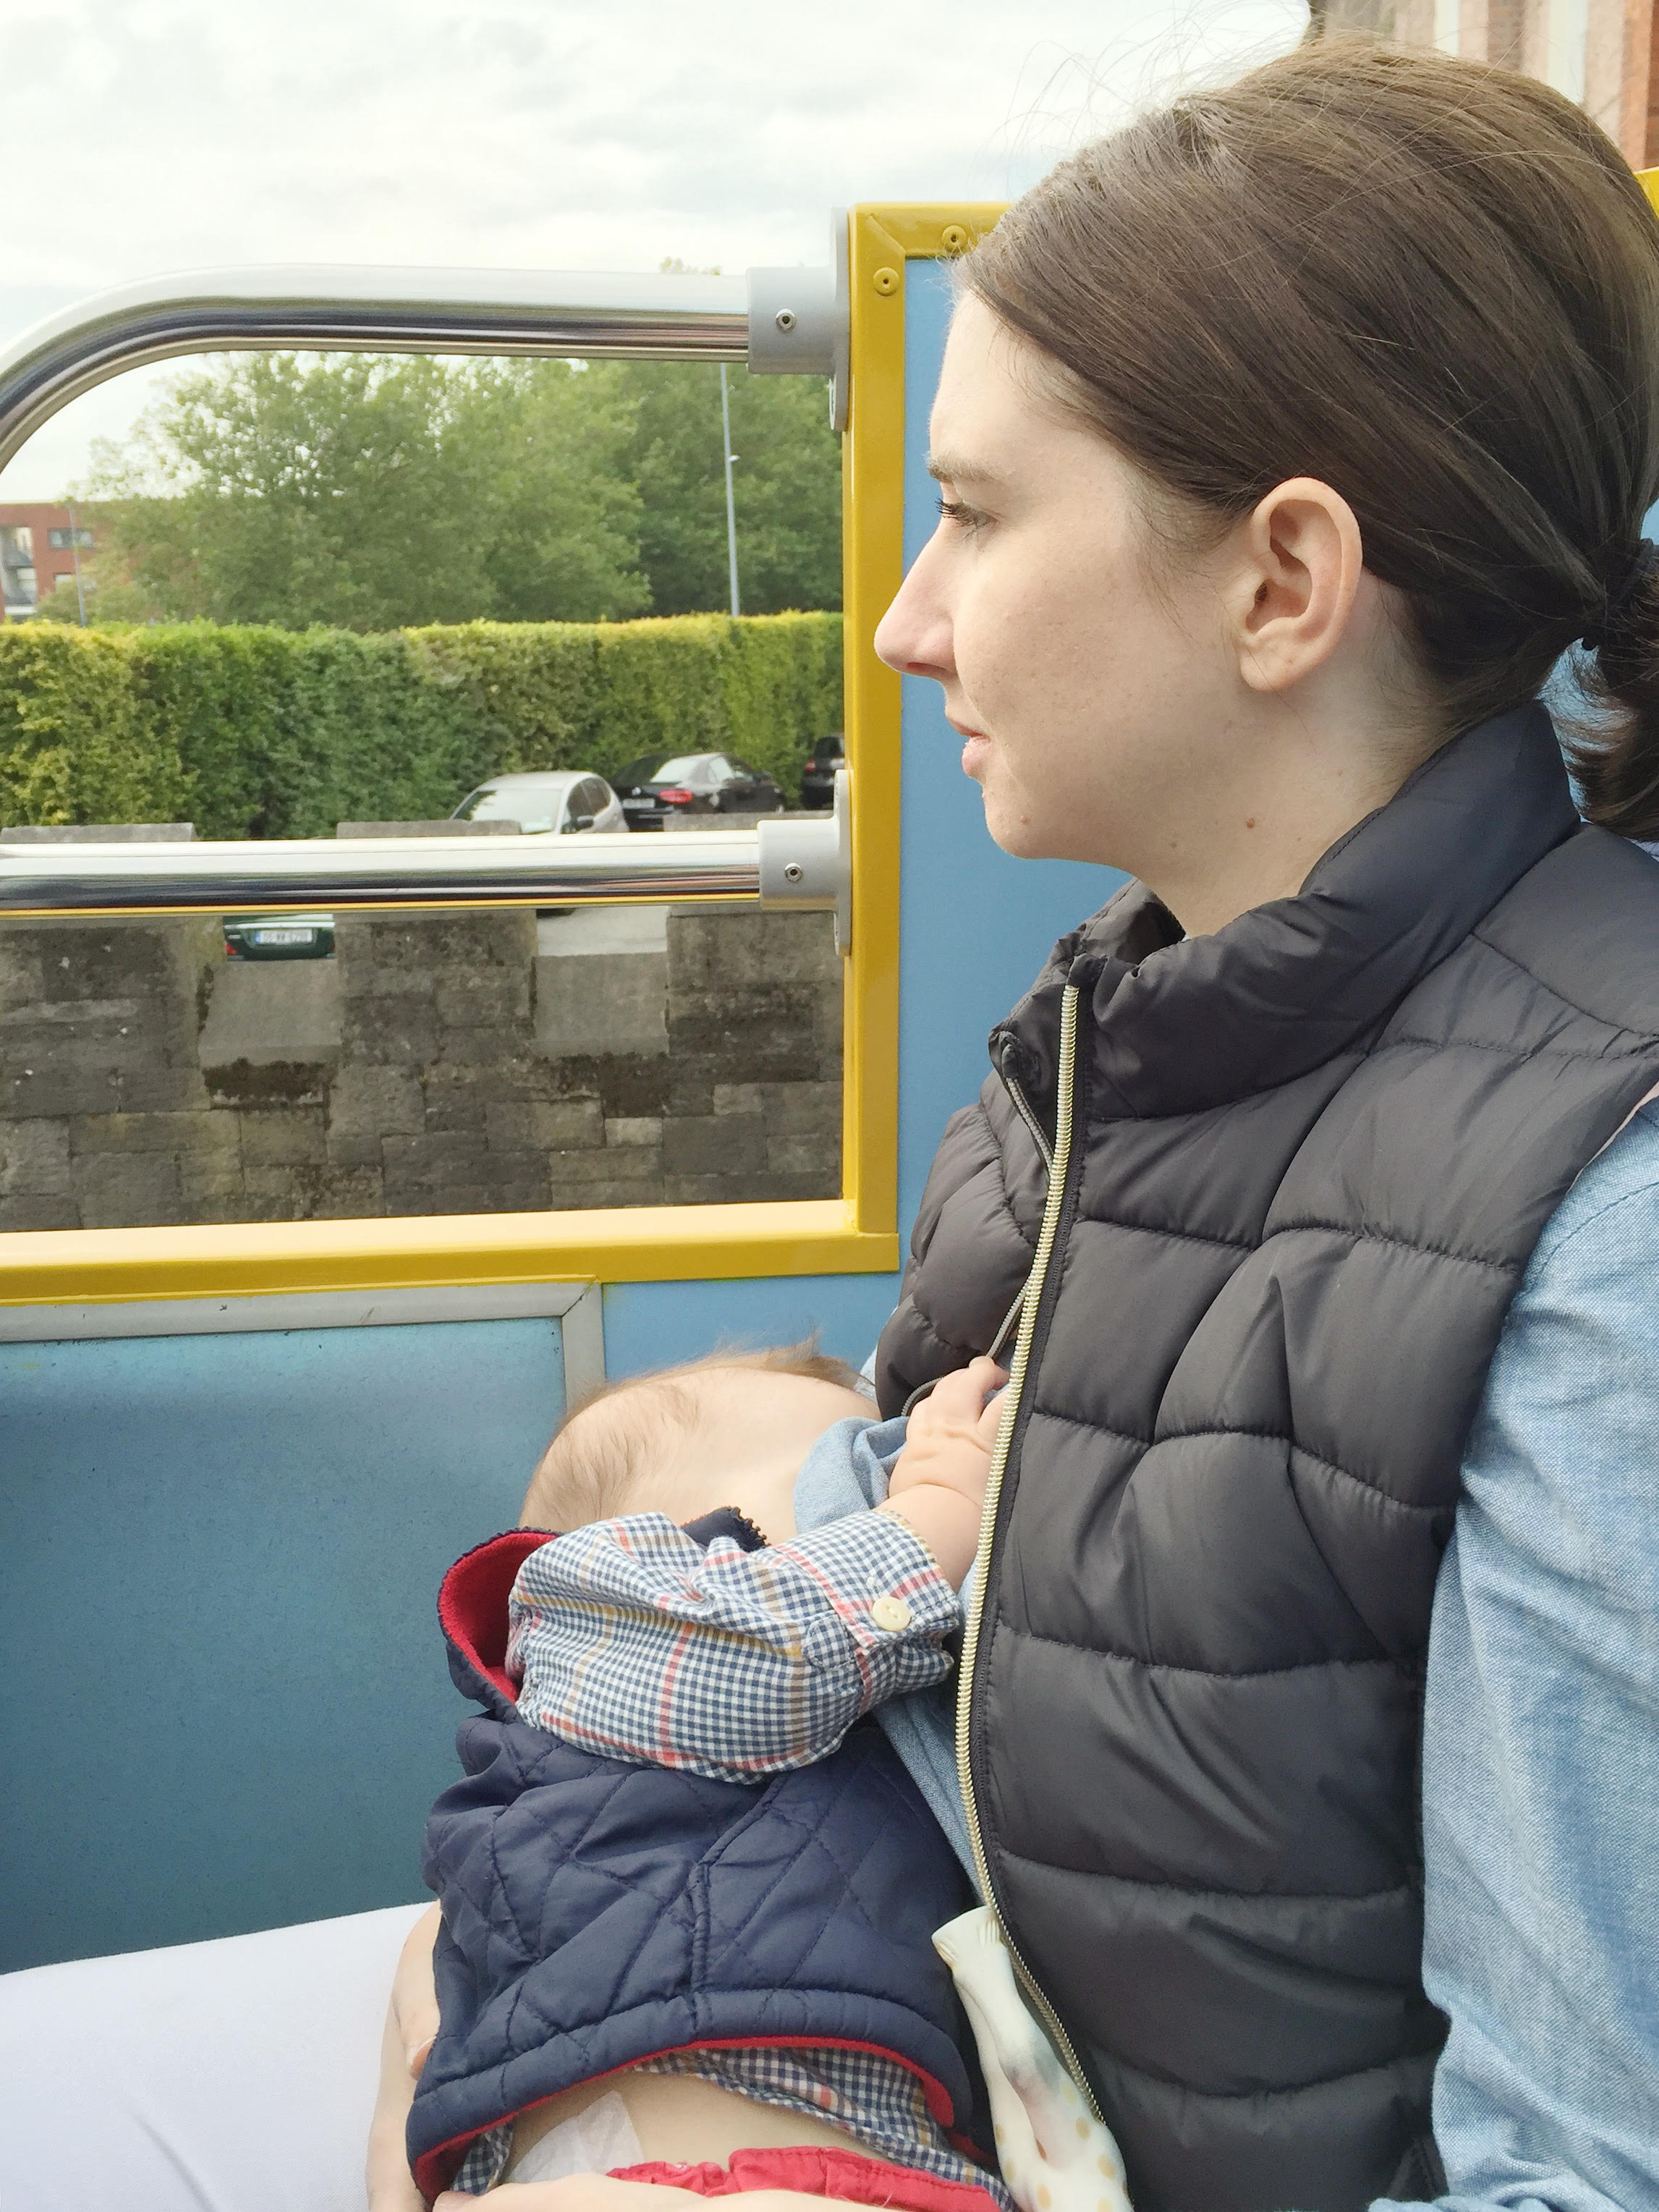 16 Tips for Traveling Abroad with a Baby | Momma Society-The Community of Modern Moms | www.MommaSociety.com | Join our party on Instagram @MommaSociety